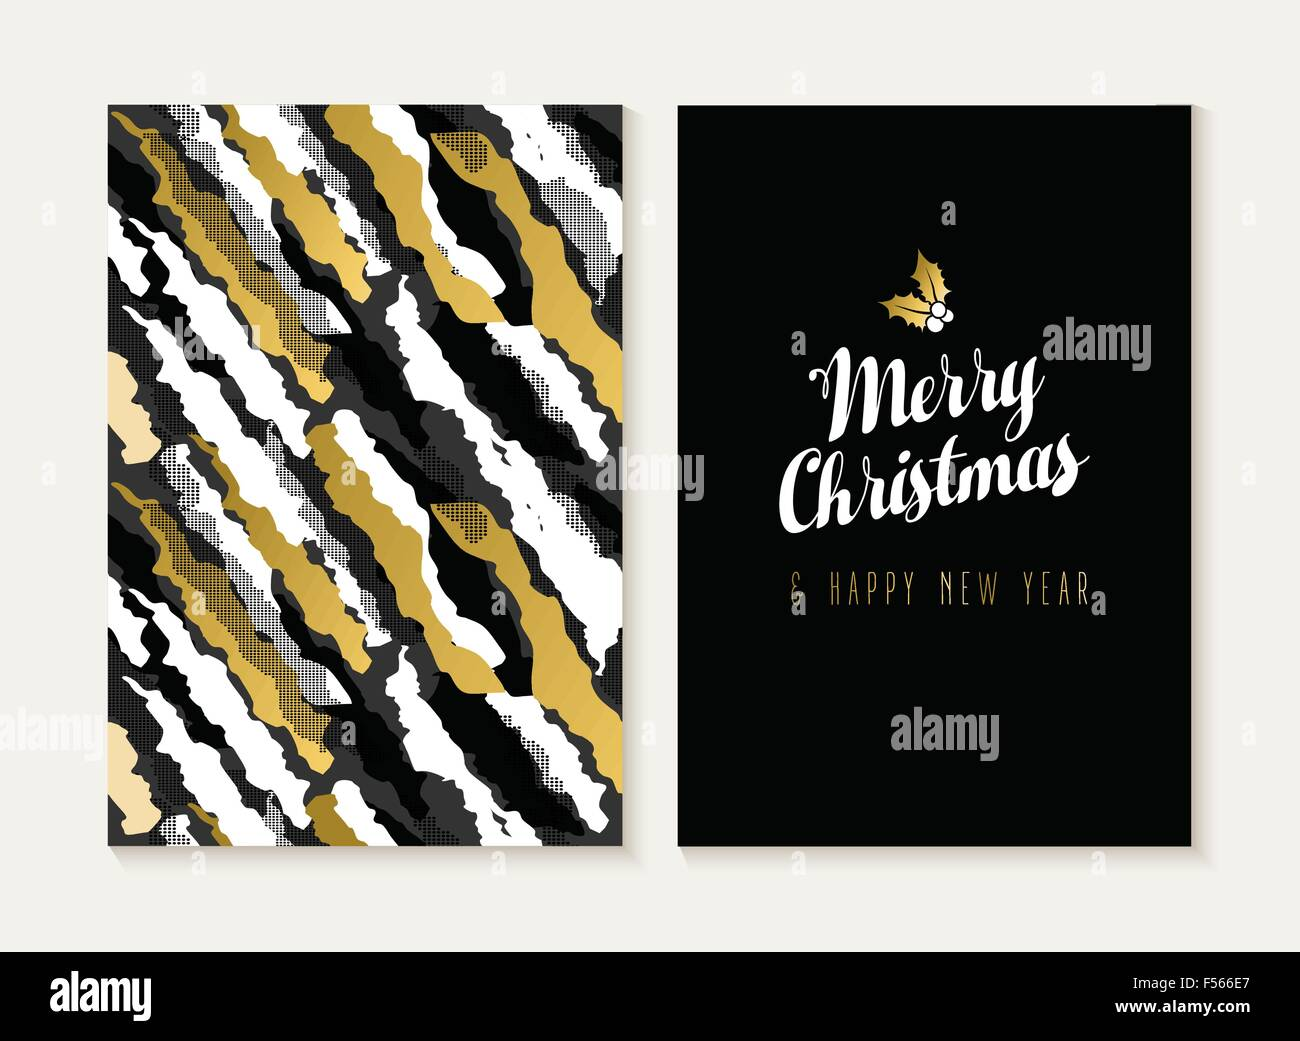 merry christmas and happy new year card template set with retro 80s style seamless pattern and trendy holiday text in gold metal